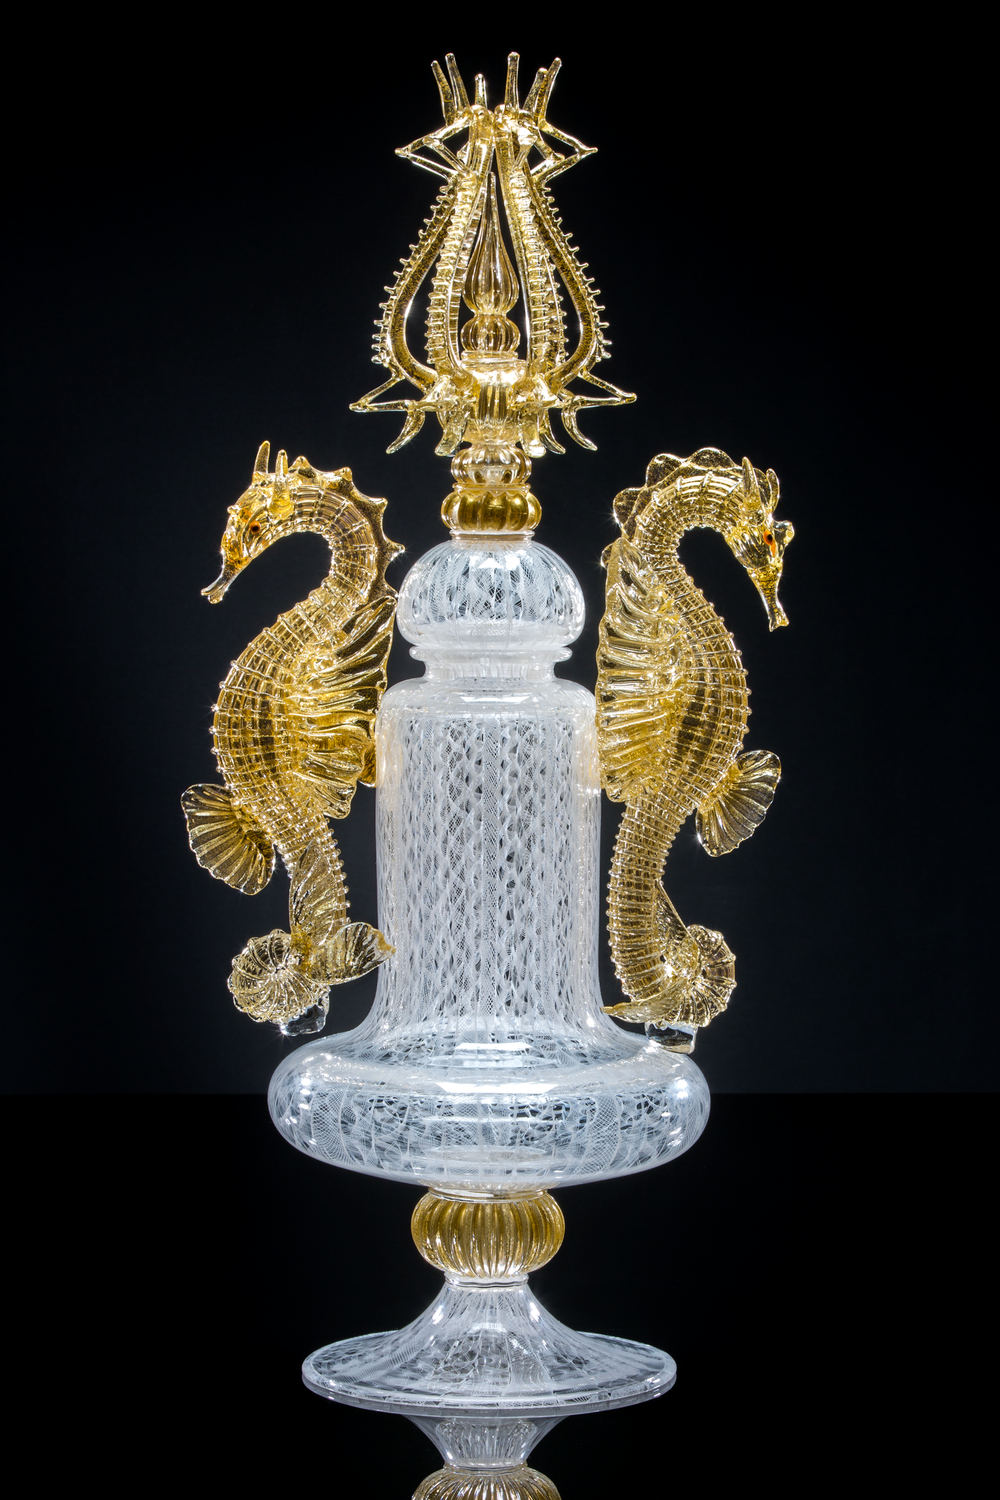 James Mongrain (American, born 1968).  Poseidon V,  2015. Glass; 29 1/2 x 13 1/2 x 9 3/4 in. Courtesy of The George R. Stroemple Collection, a Stroemple/Stirek Collaboration. Photo by Drew Lenihan.